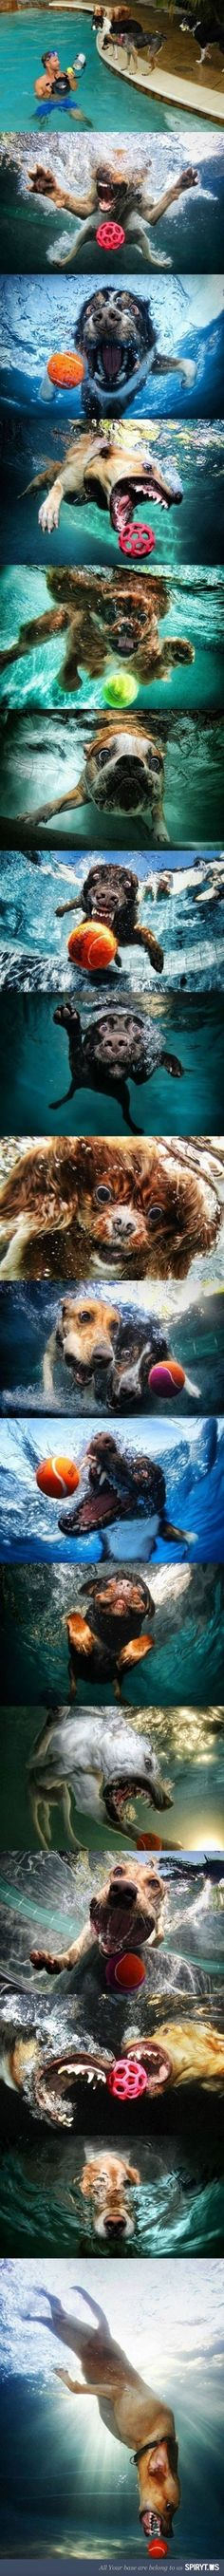 hehe doggies under water